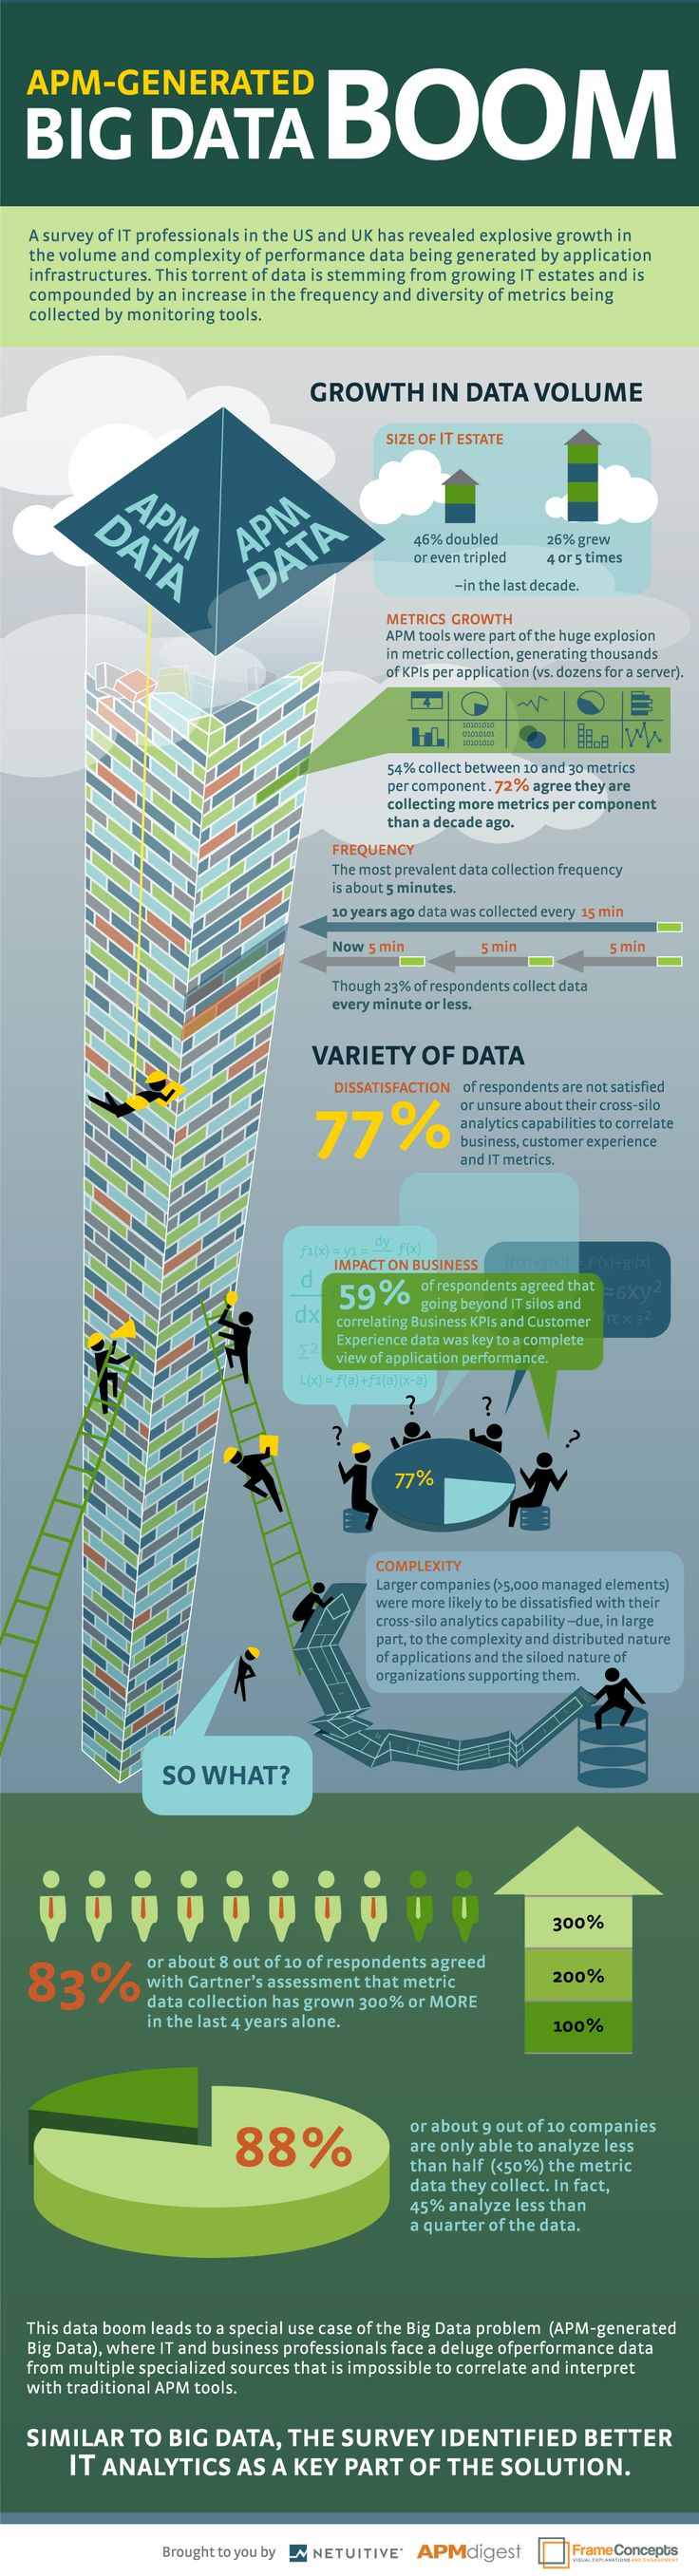 Big Data Boom #infographic